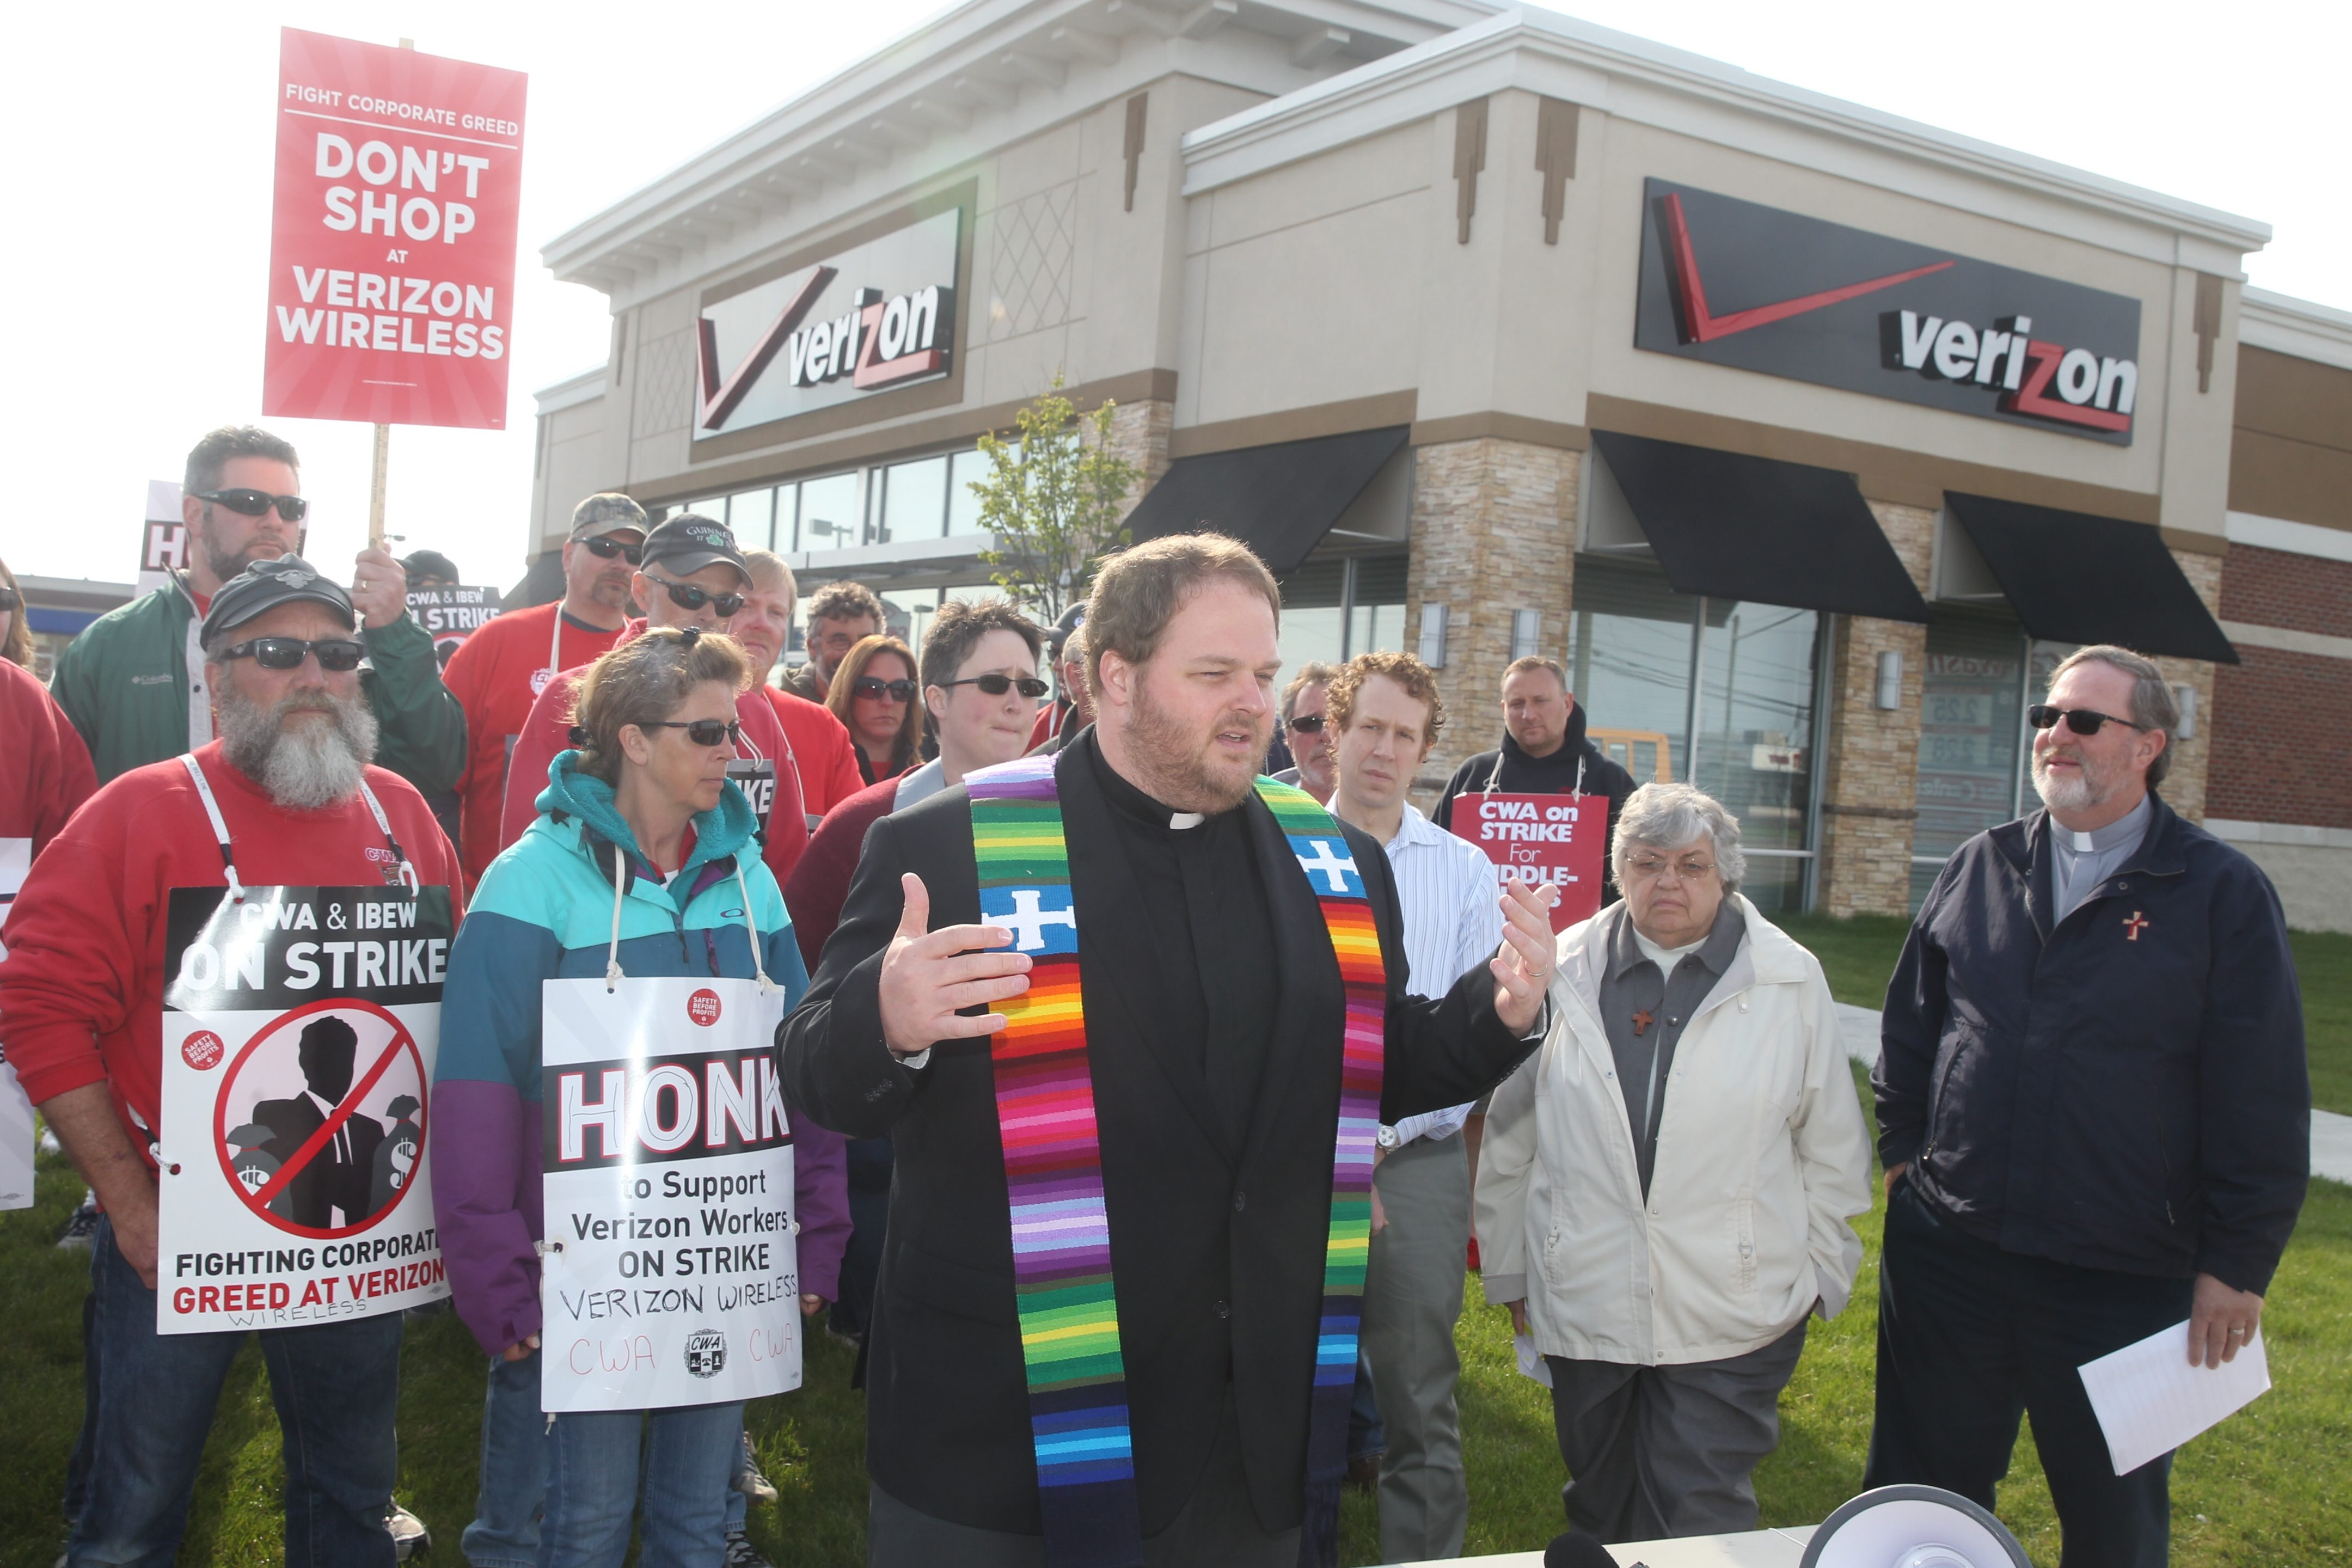 Rev. Kirk Loubenstein, director of the Coalition for Economic Justice, and other members of the clergy join Verizon workers on the strike line after a prayer vigil at the Verizon Wireless store at Union Road and Walden Avenue on Wednesday.